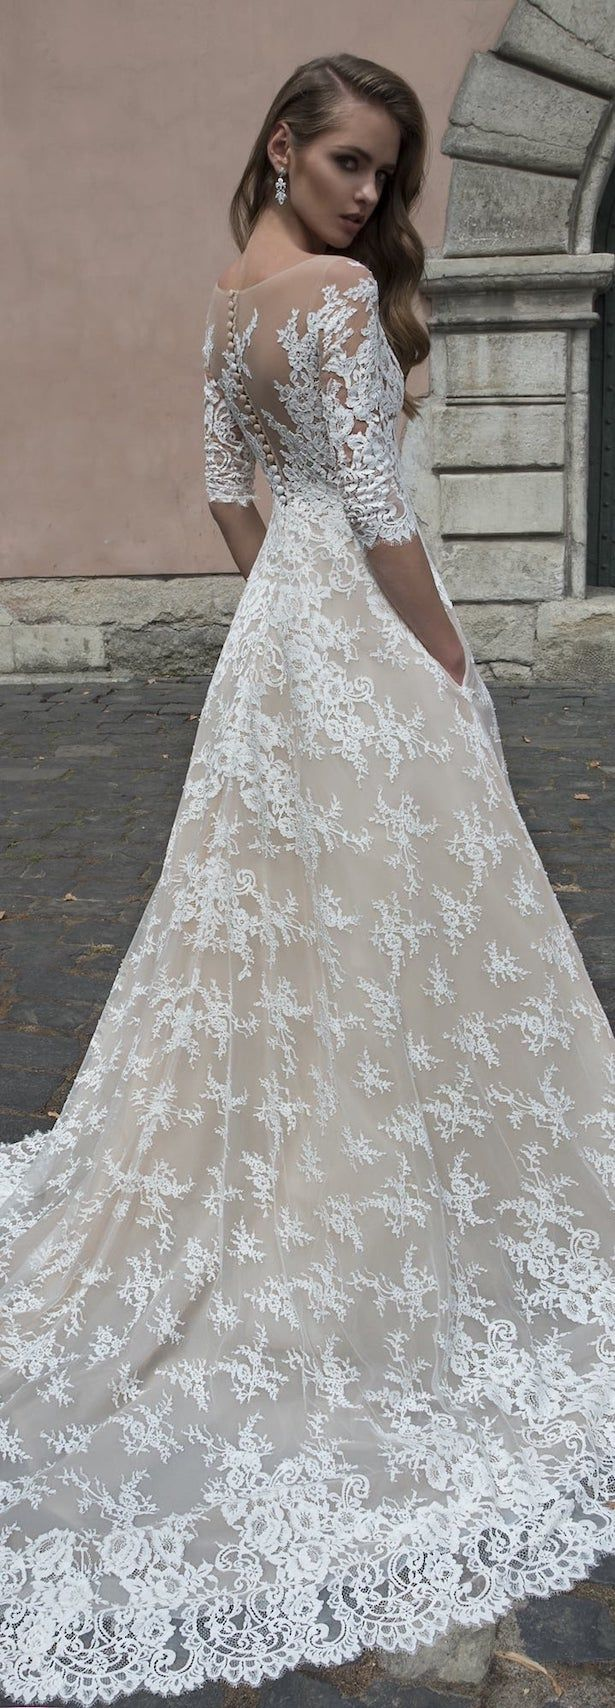 Dominiss wedding dresses wedding dress weddings and wedding